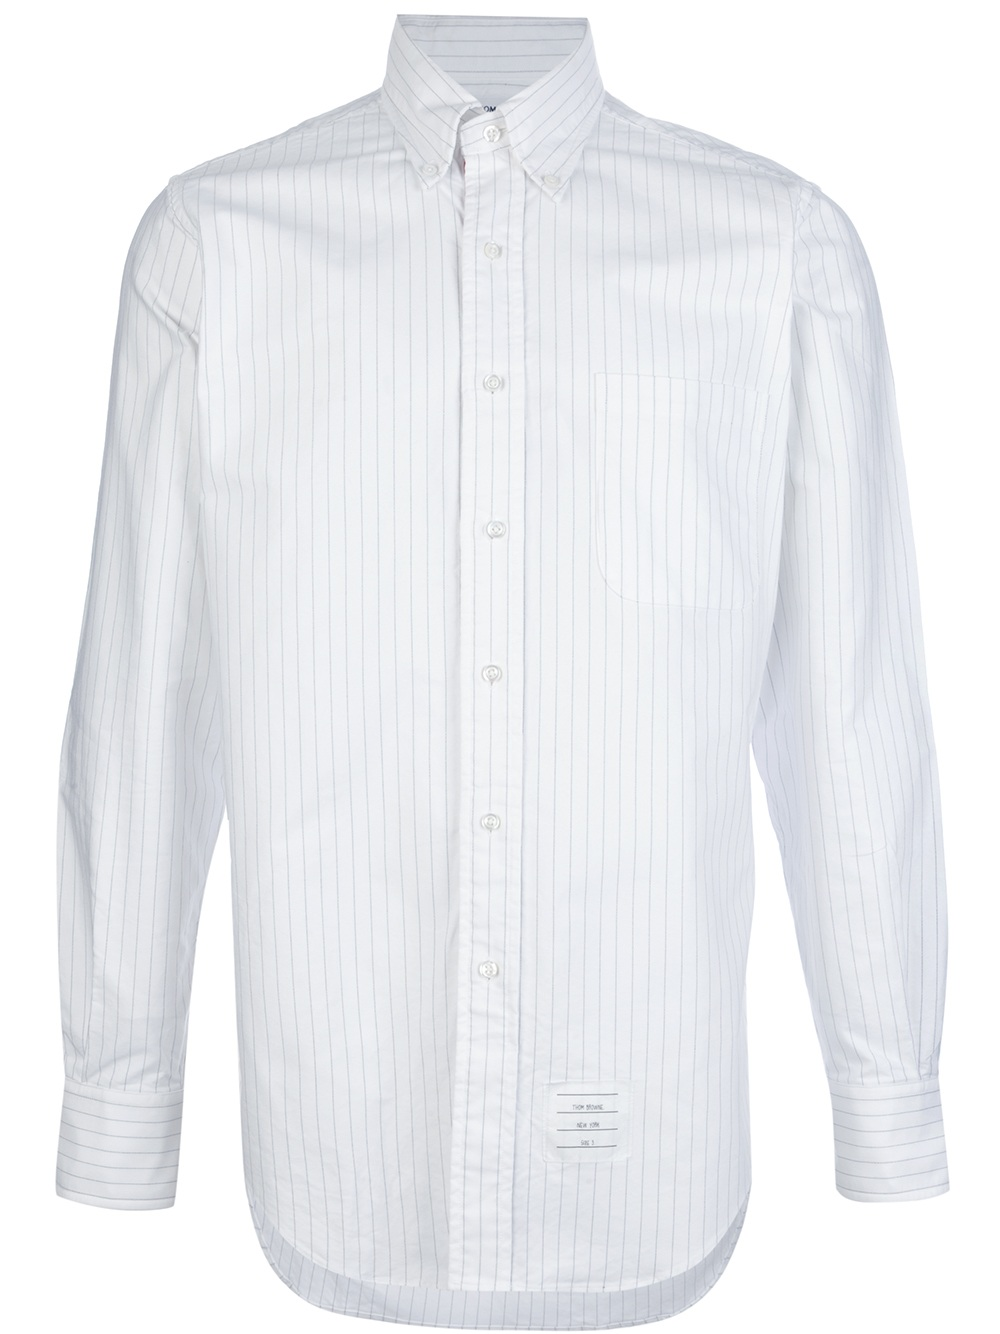 Lyst thom browne striped shirt in white for men for Thom browne white shirt